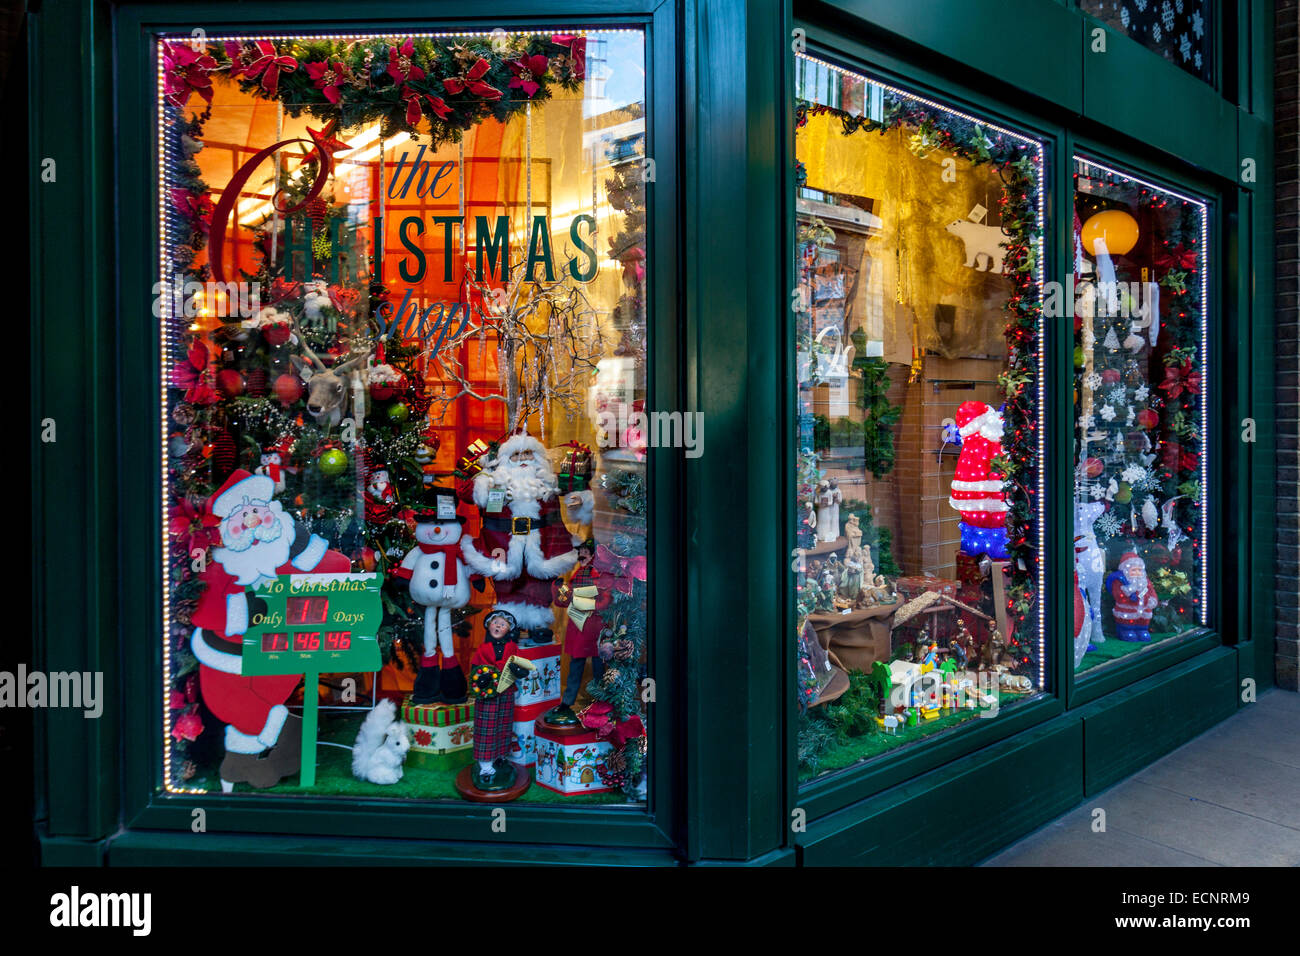 The christmas shop hay 39 s galleria london england stock for The christmas store